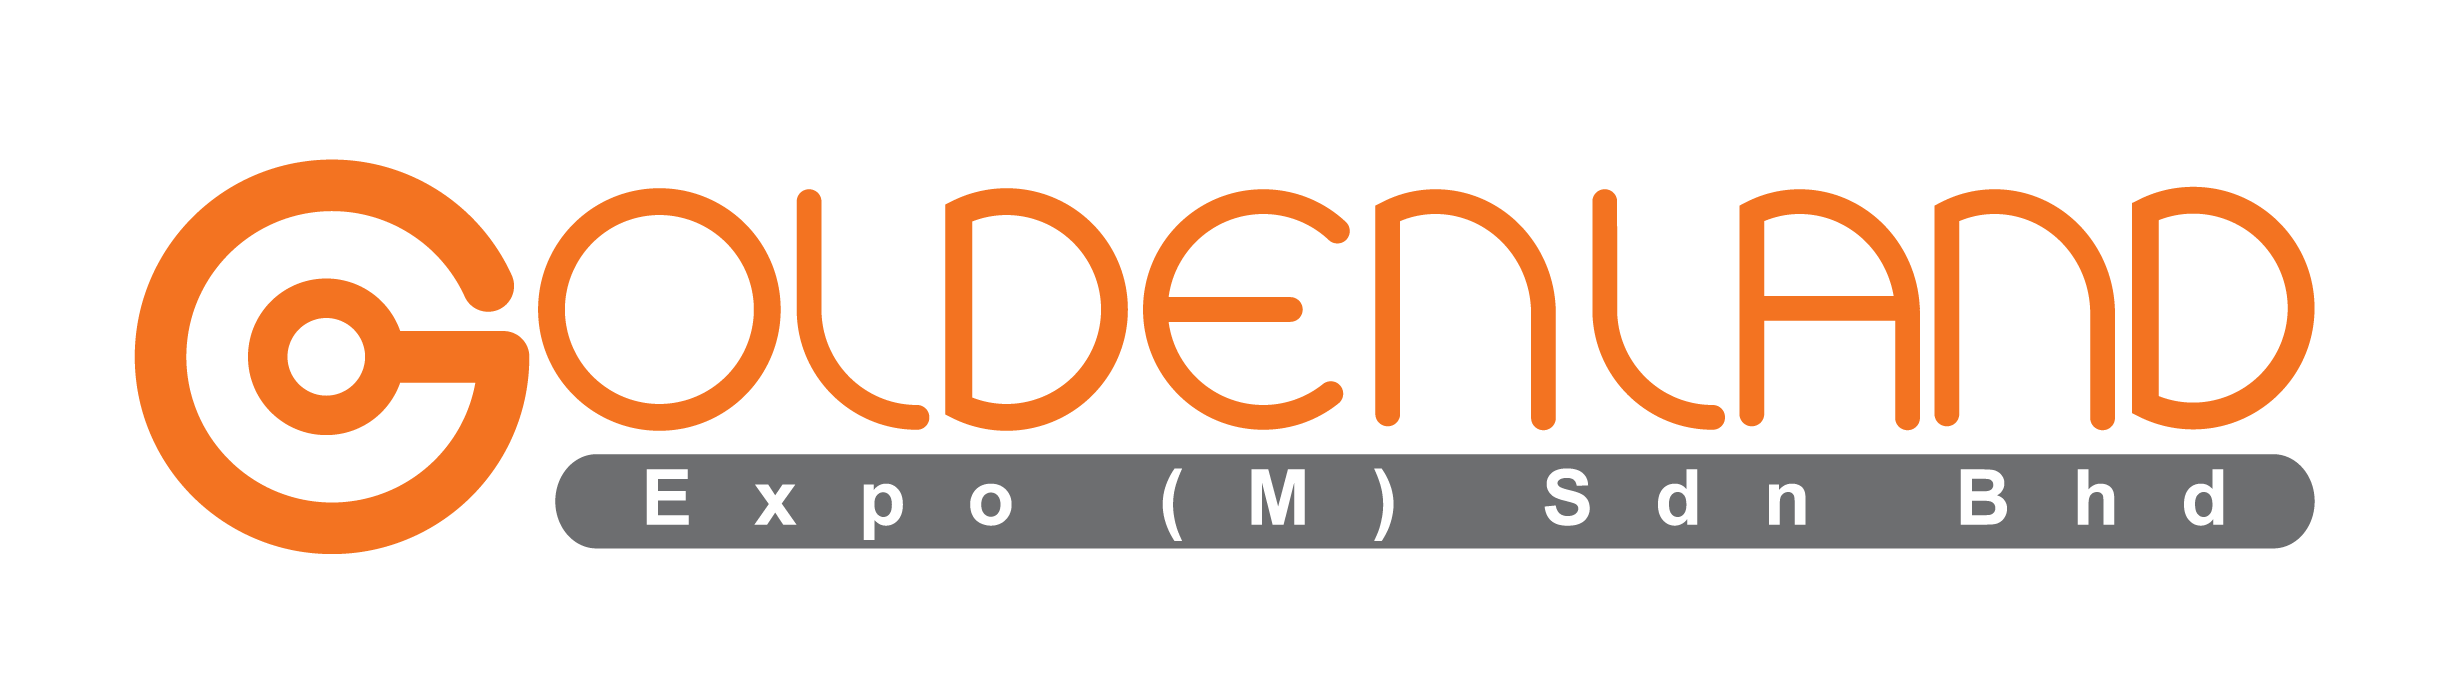 goldenland-logo-with-white-edge-01